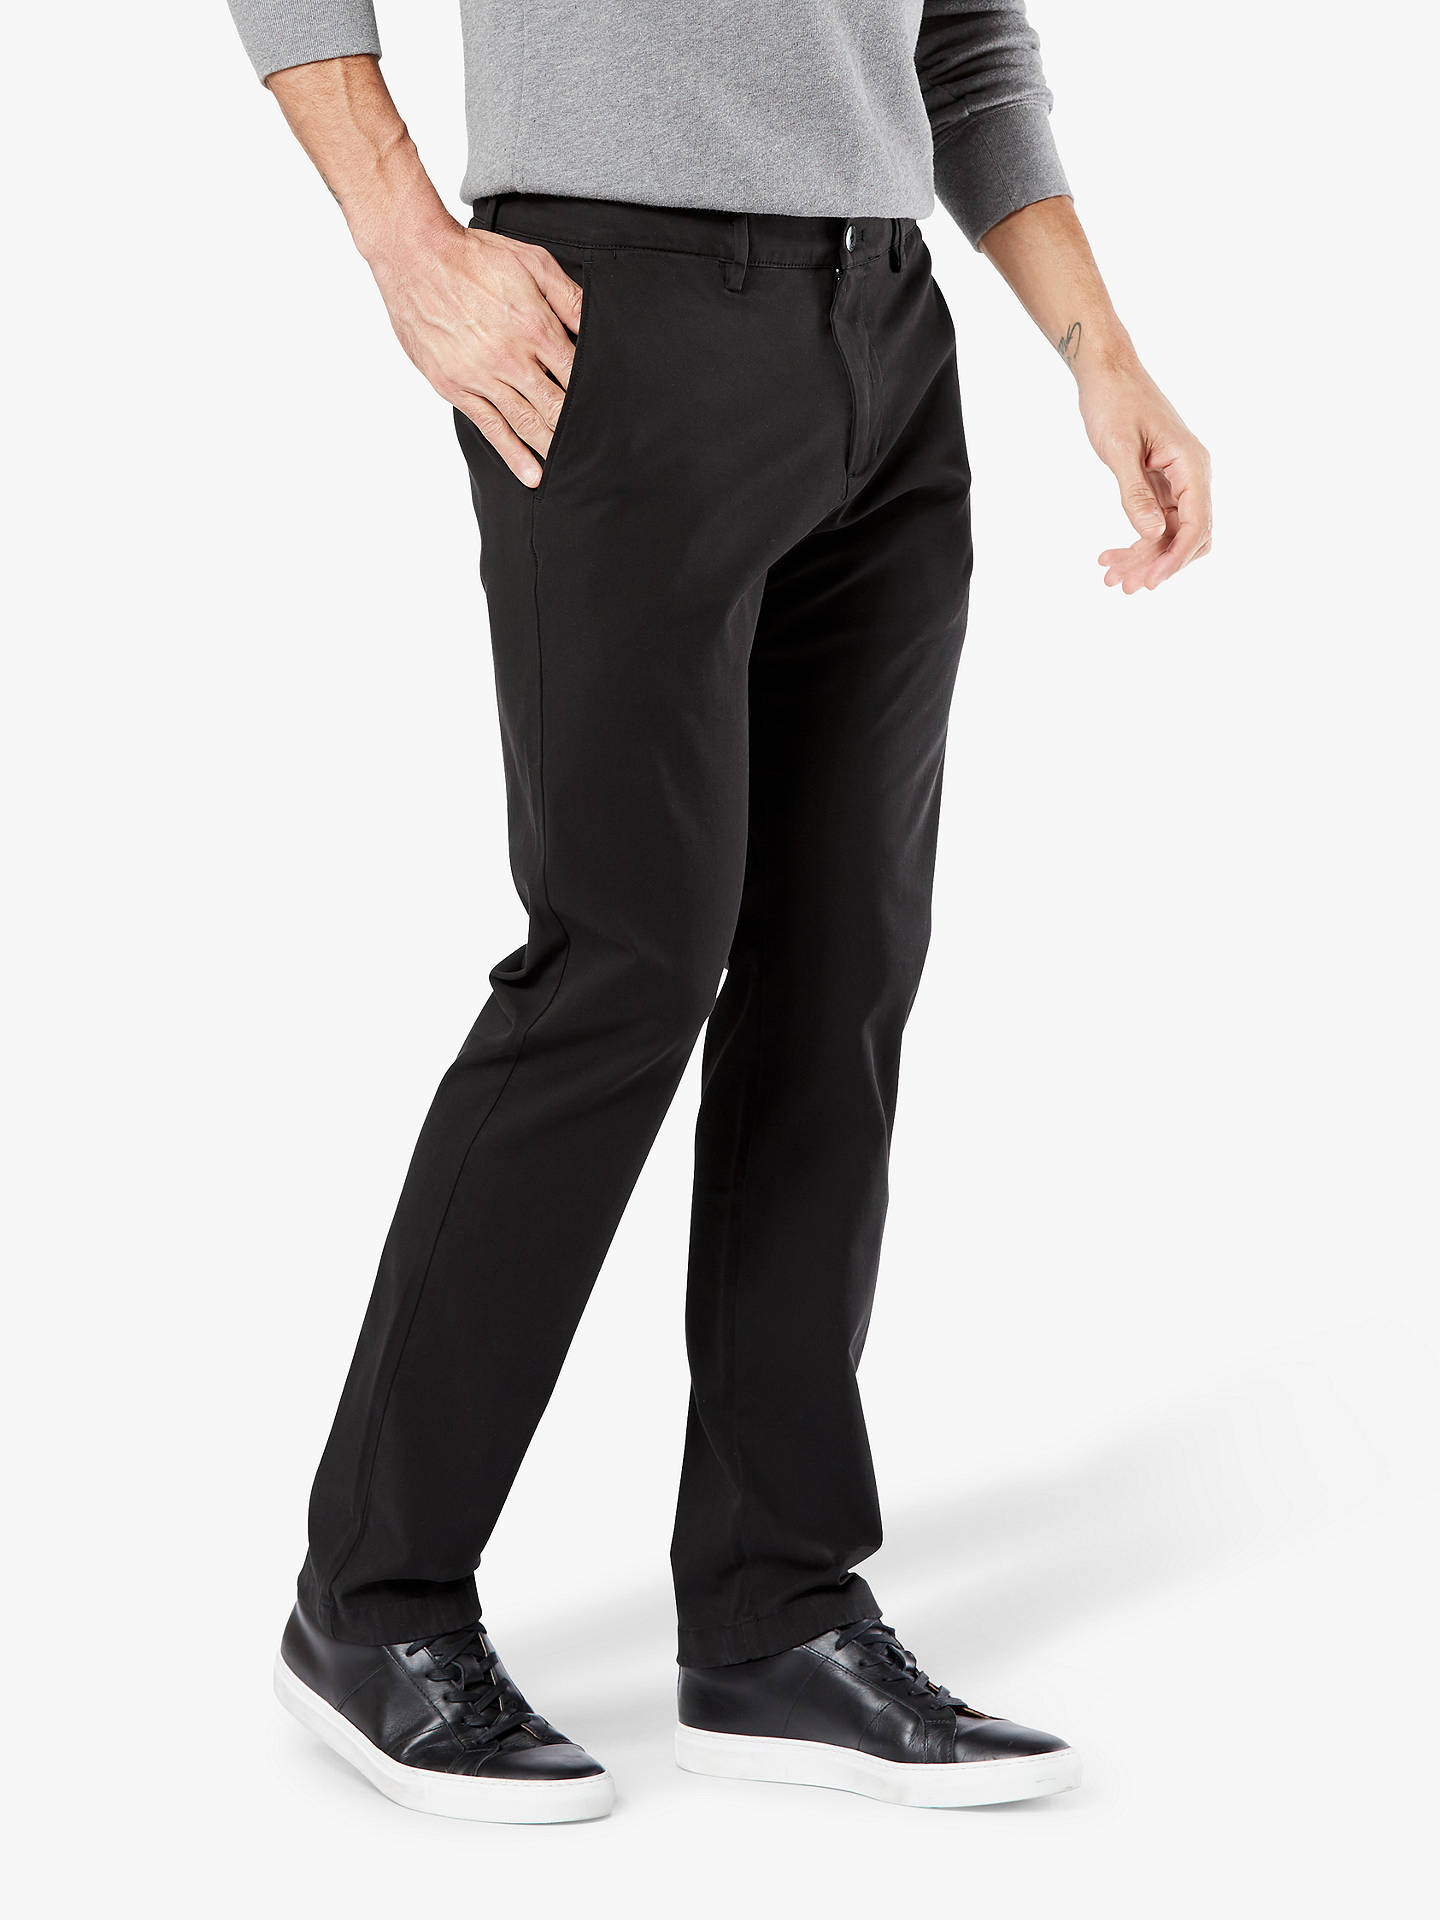 Buy Dockers Smart 360 Flex Slim Corduroy Chinos, Black, 34R Online at johnlewis.com